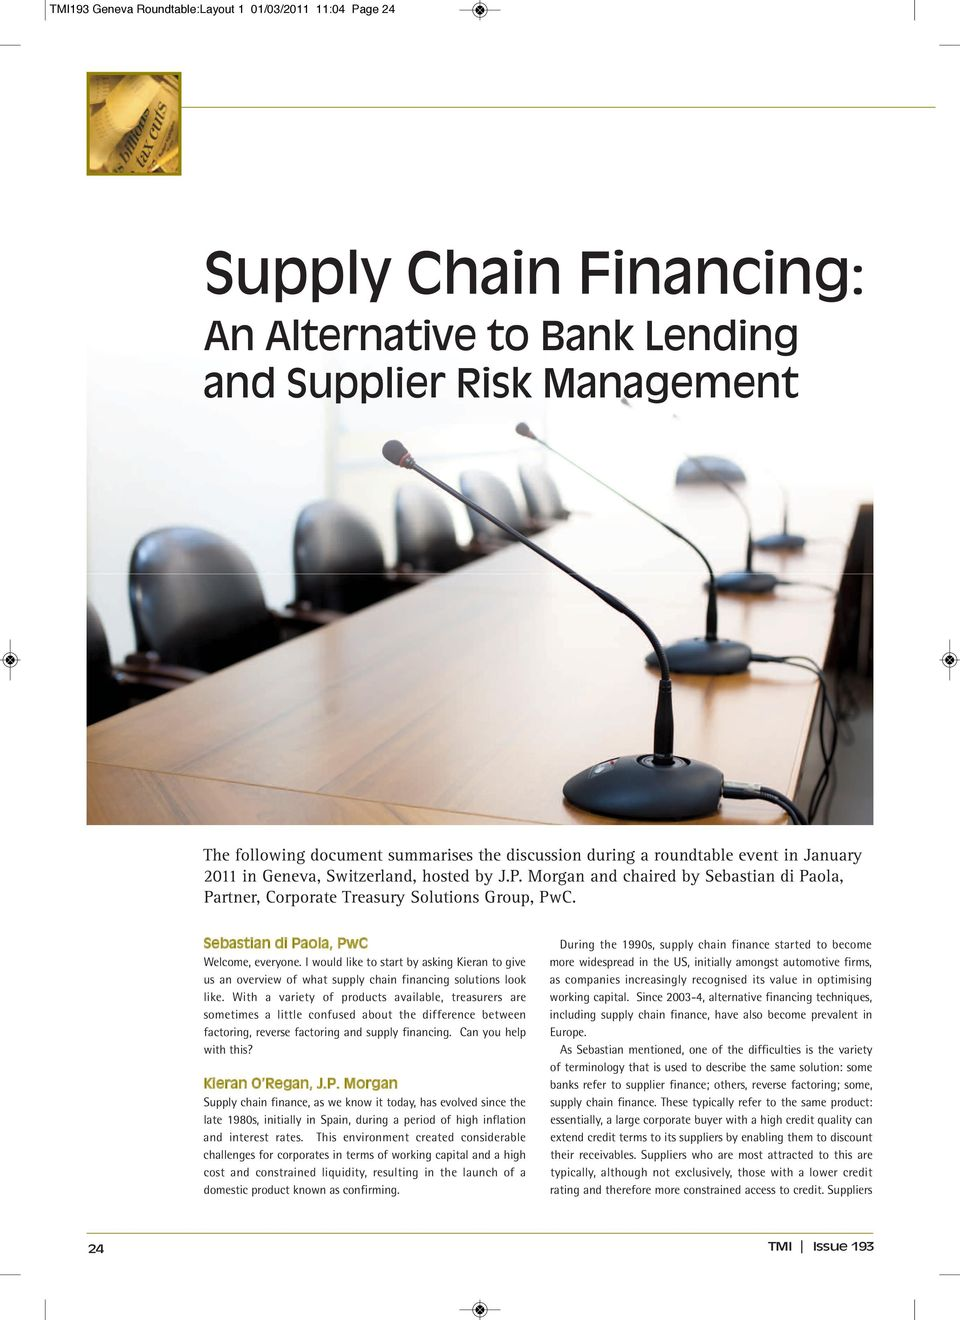 I would like to start by asking Kieran to give us an overview of what supply chain financing solutions look like.